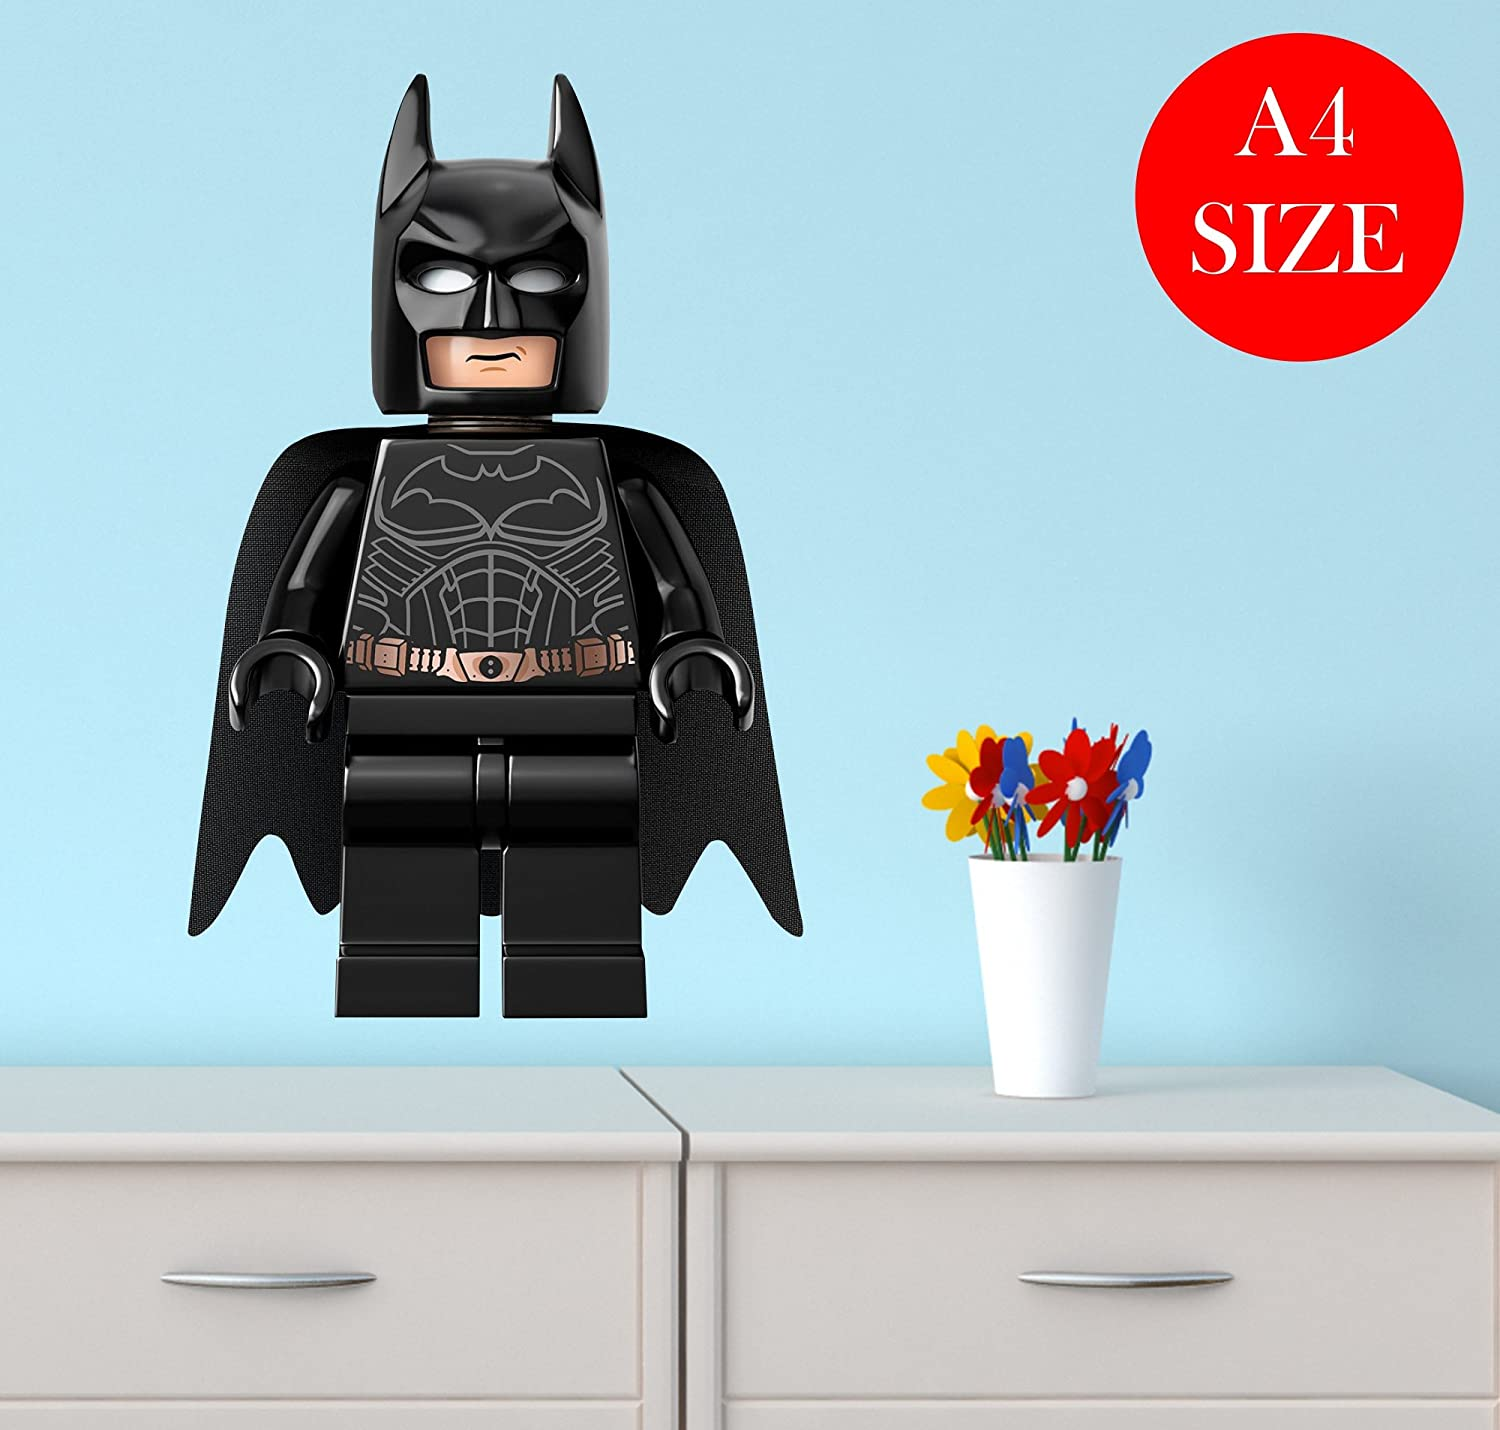 A4 LEGO BATMAN nursery bedroom WALL ART BOY GIRL sticker laptop CAR vinyl ROBIN Christa Prints